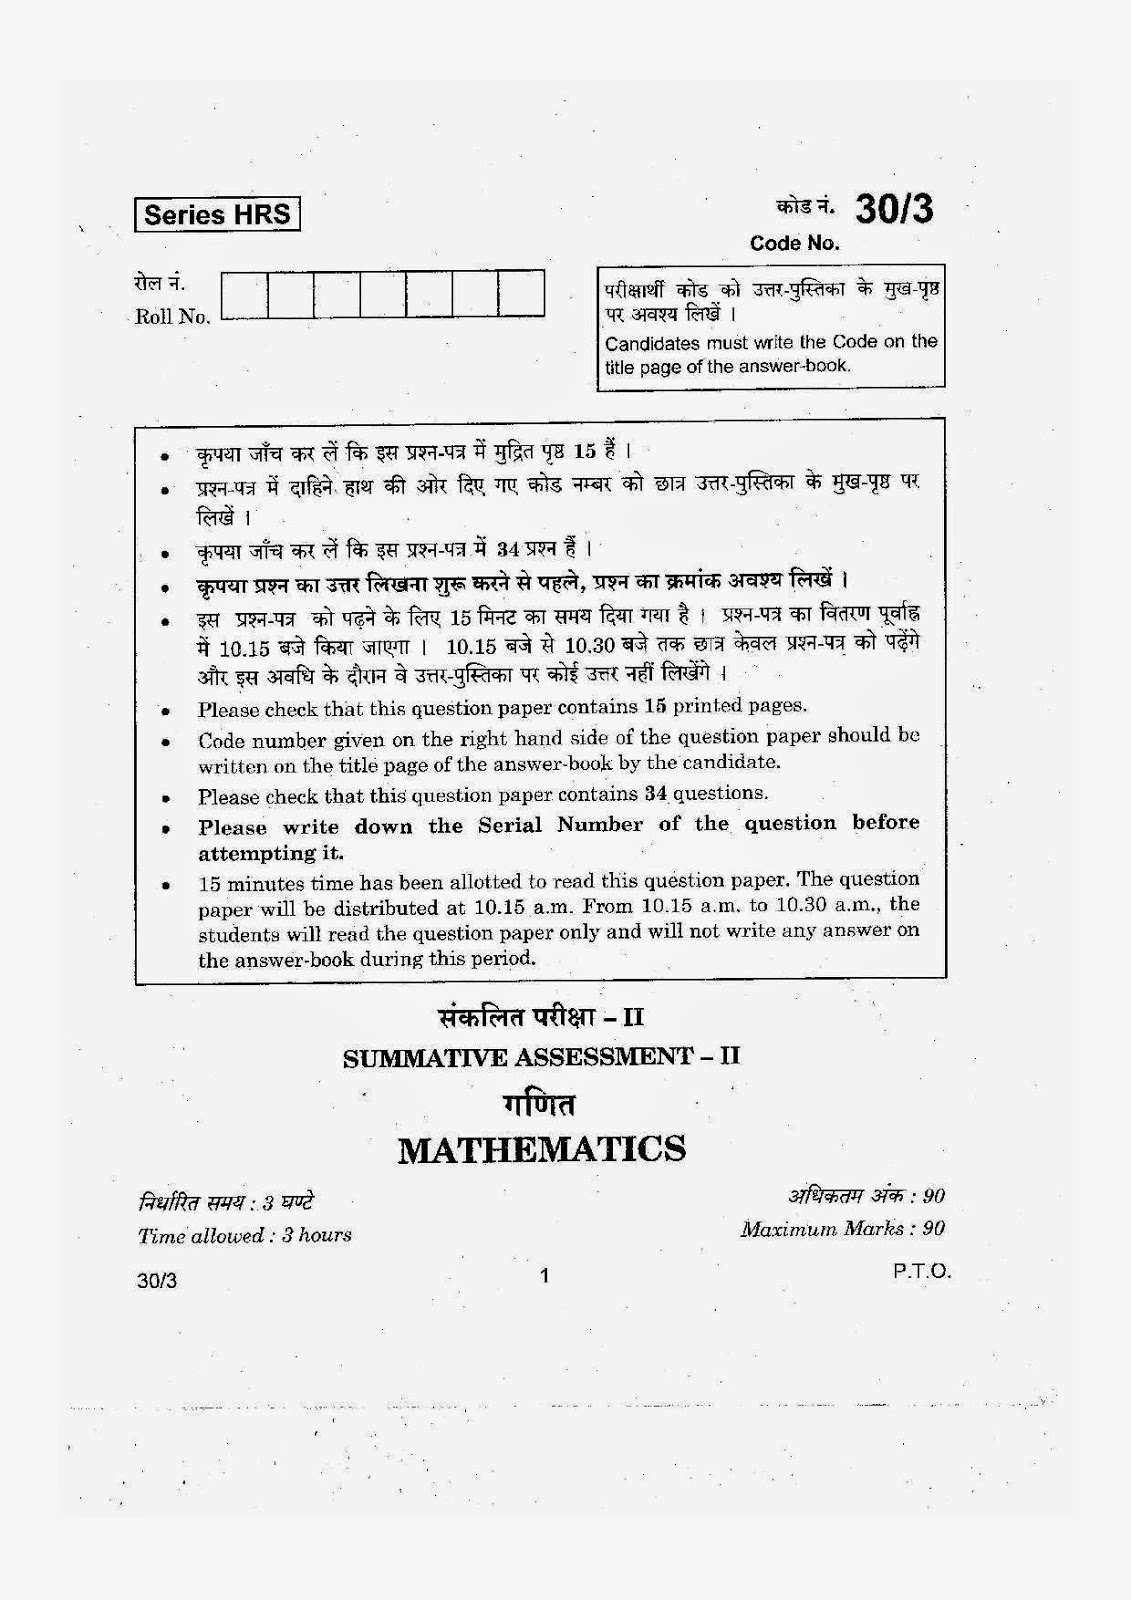 Cbse mathematics 2014 class x board question paper 3 10 years cbse class 10th mathematics question paper 2014 malvernweather Gallery